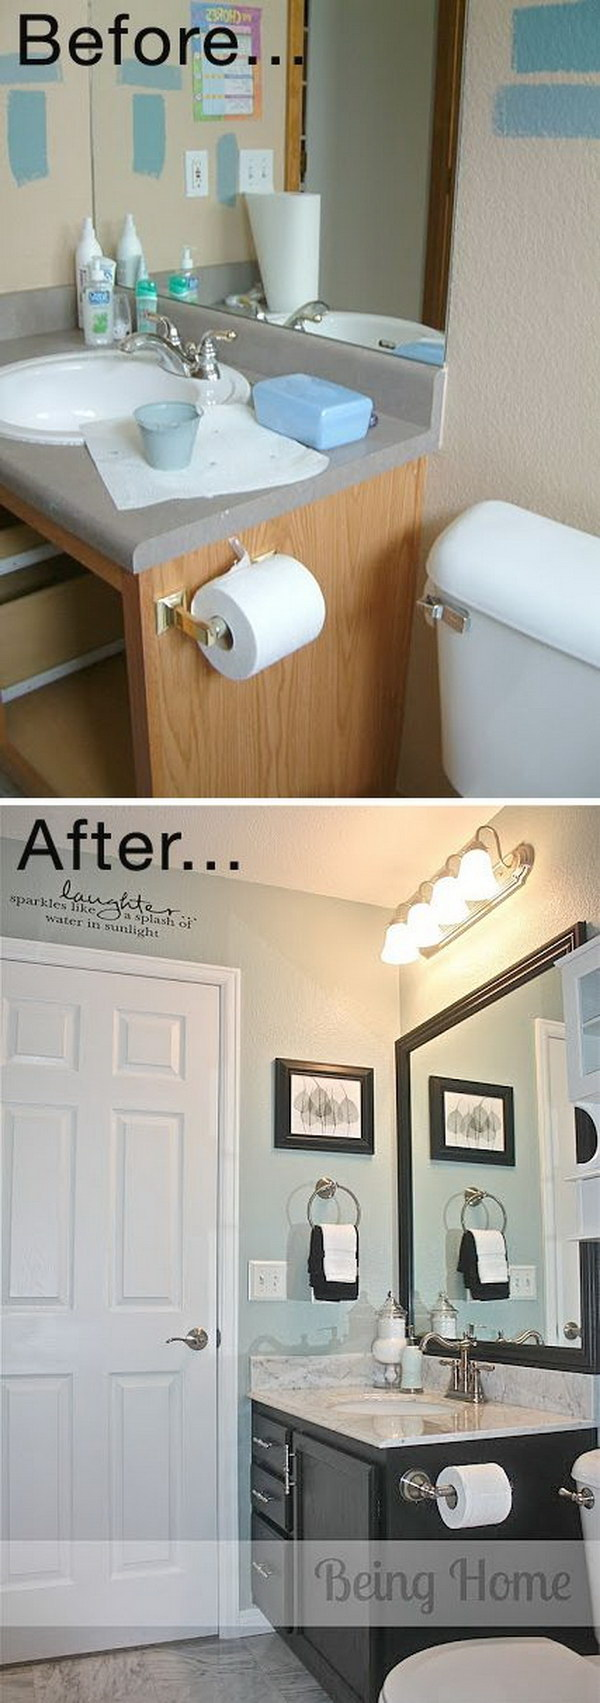 Before and after makeovers 20 most beautiful bathroom for Small bathroom makeover ideas